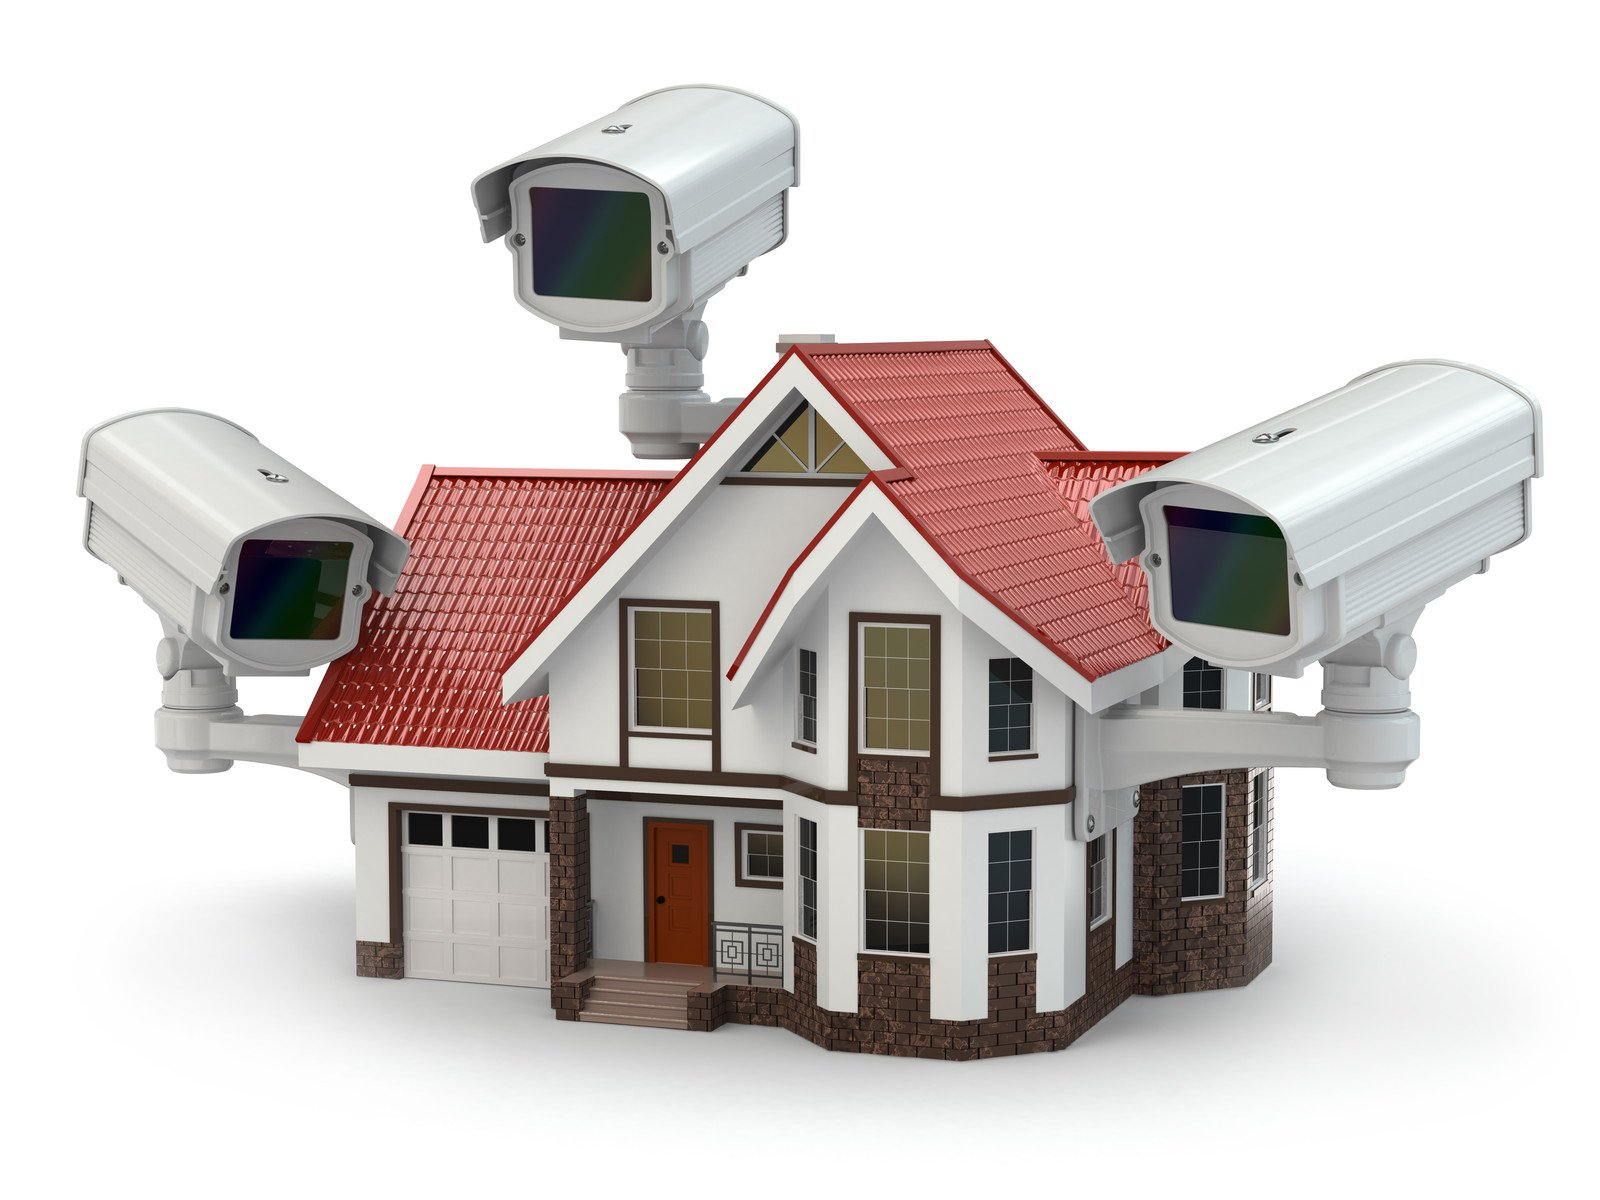 What Are The Characteristics Of A Good Security Camera?